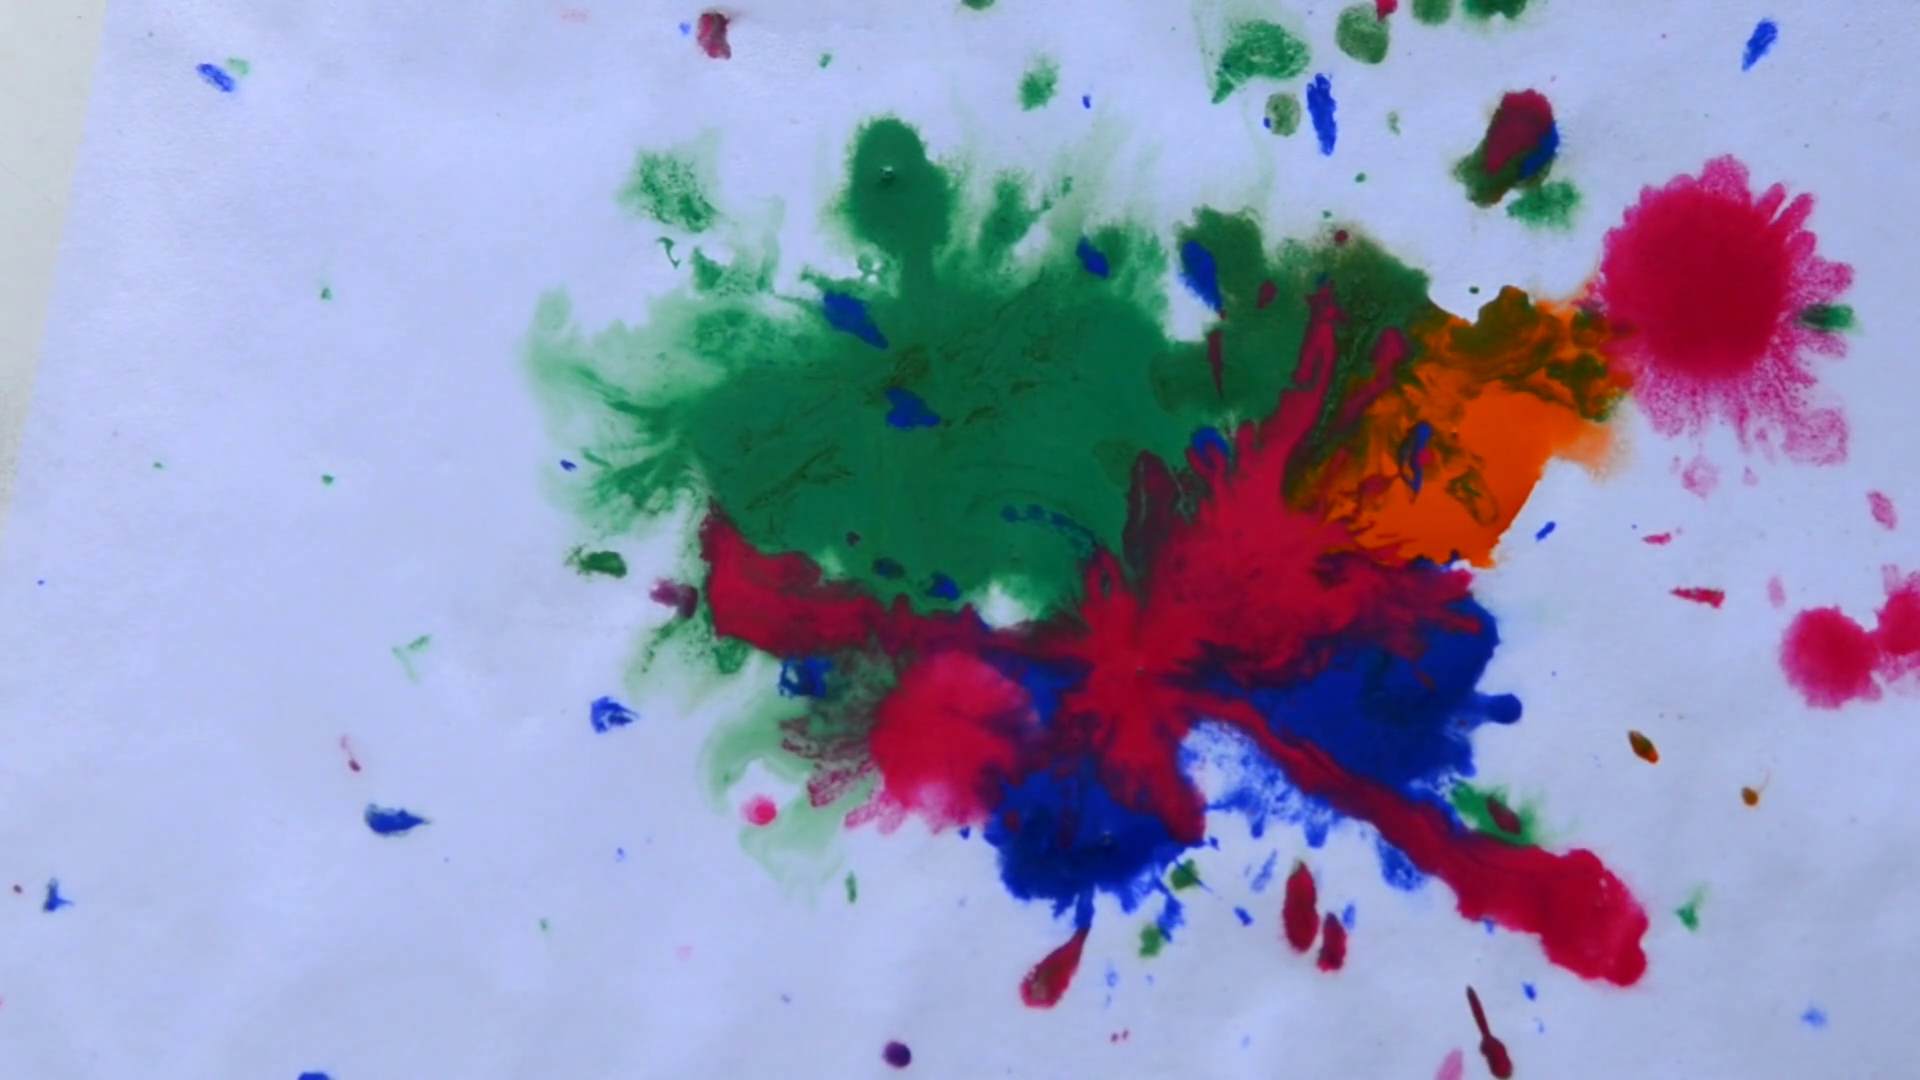 1920x1080 Hd 1080 Drops Of Paint Of Different Red, Blue, Green, Yellow